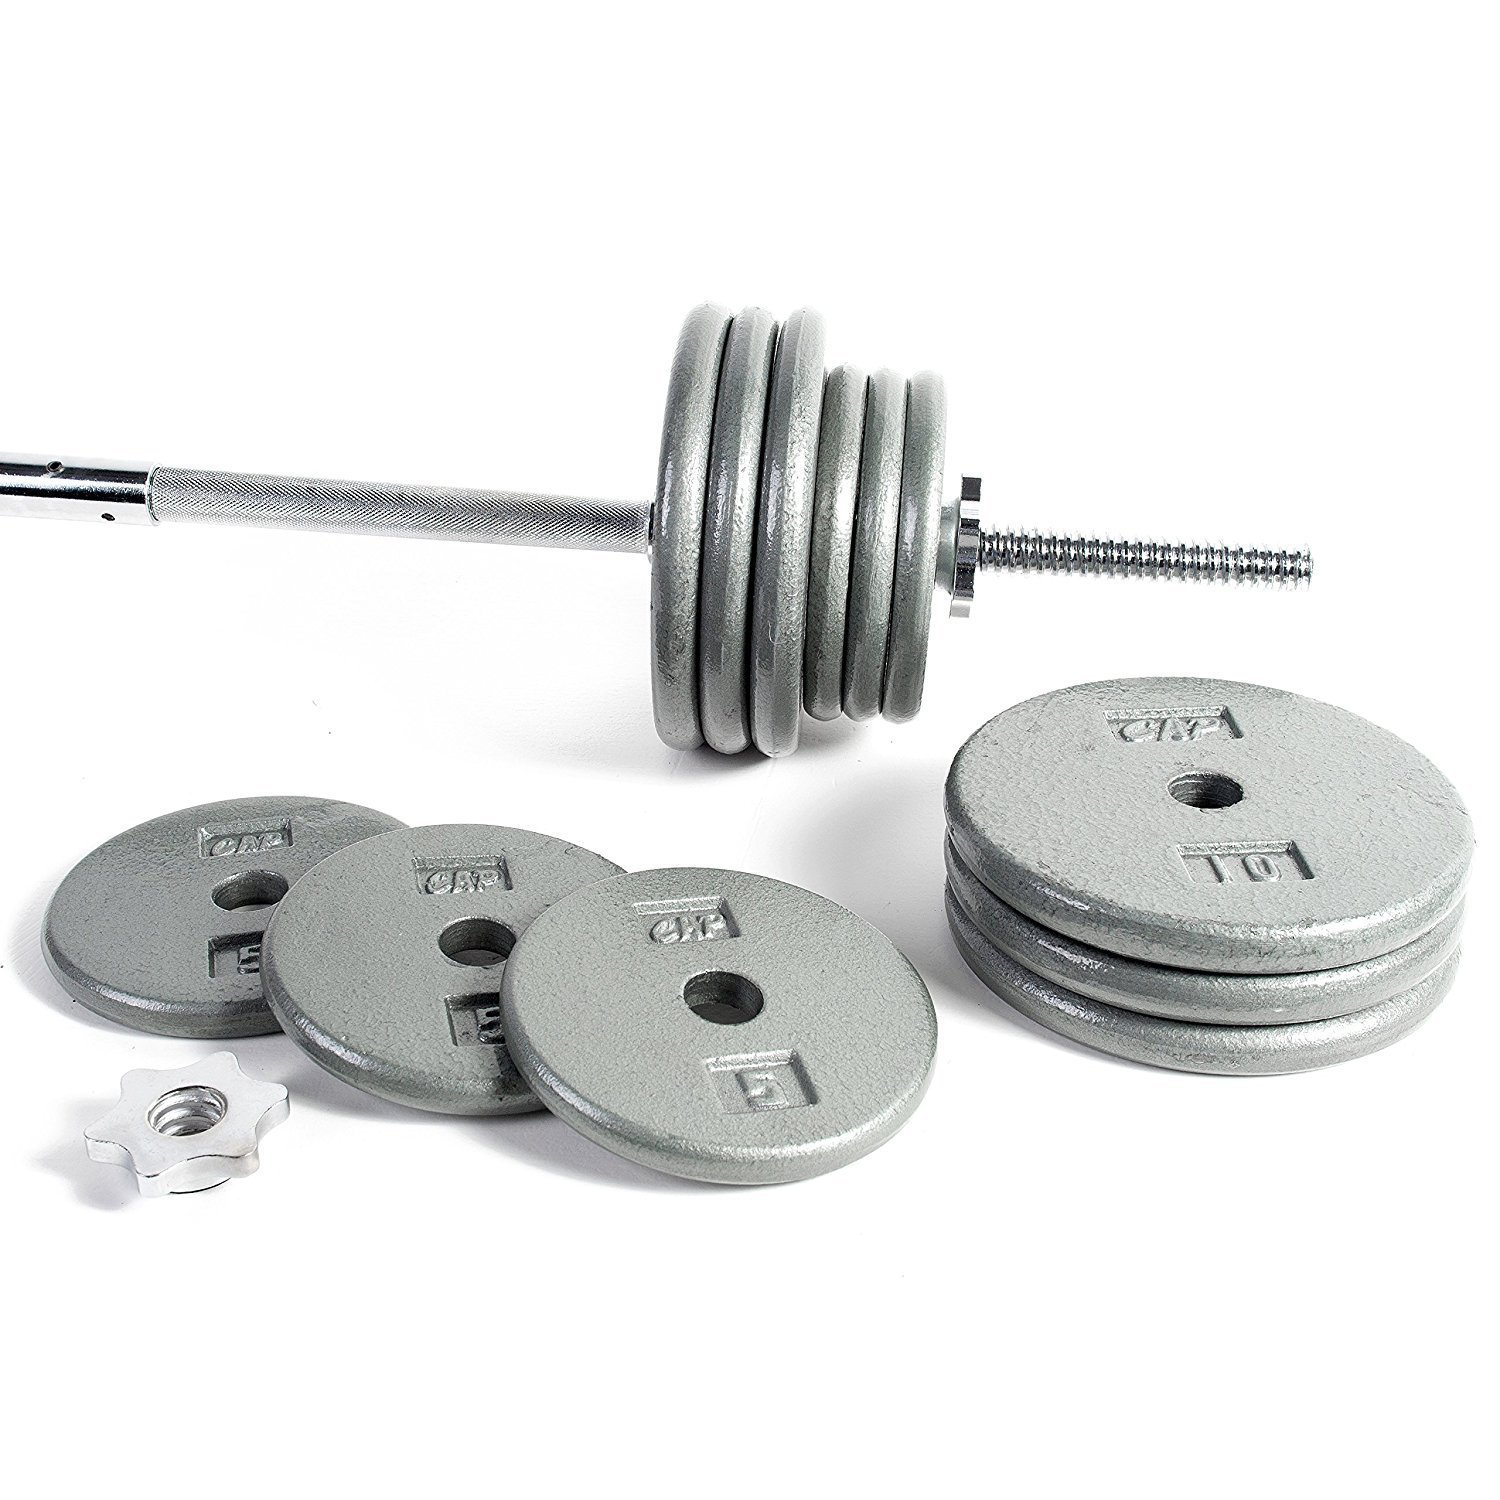 .CAP Barbell Standard 1-Inch Barbell Weight Set, 150 lb